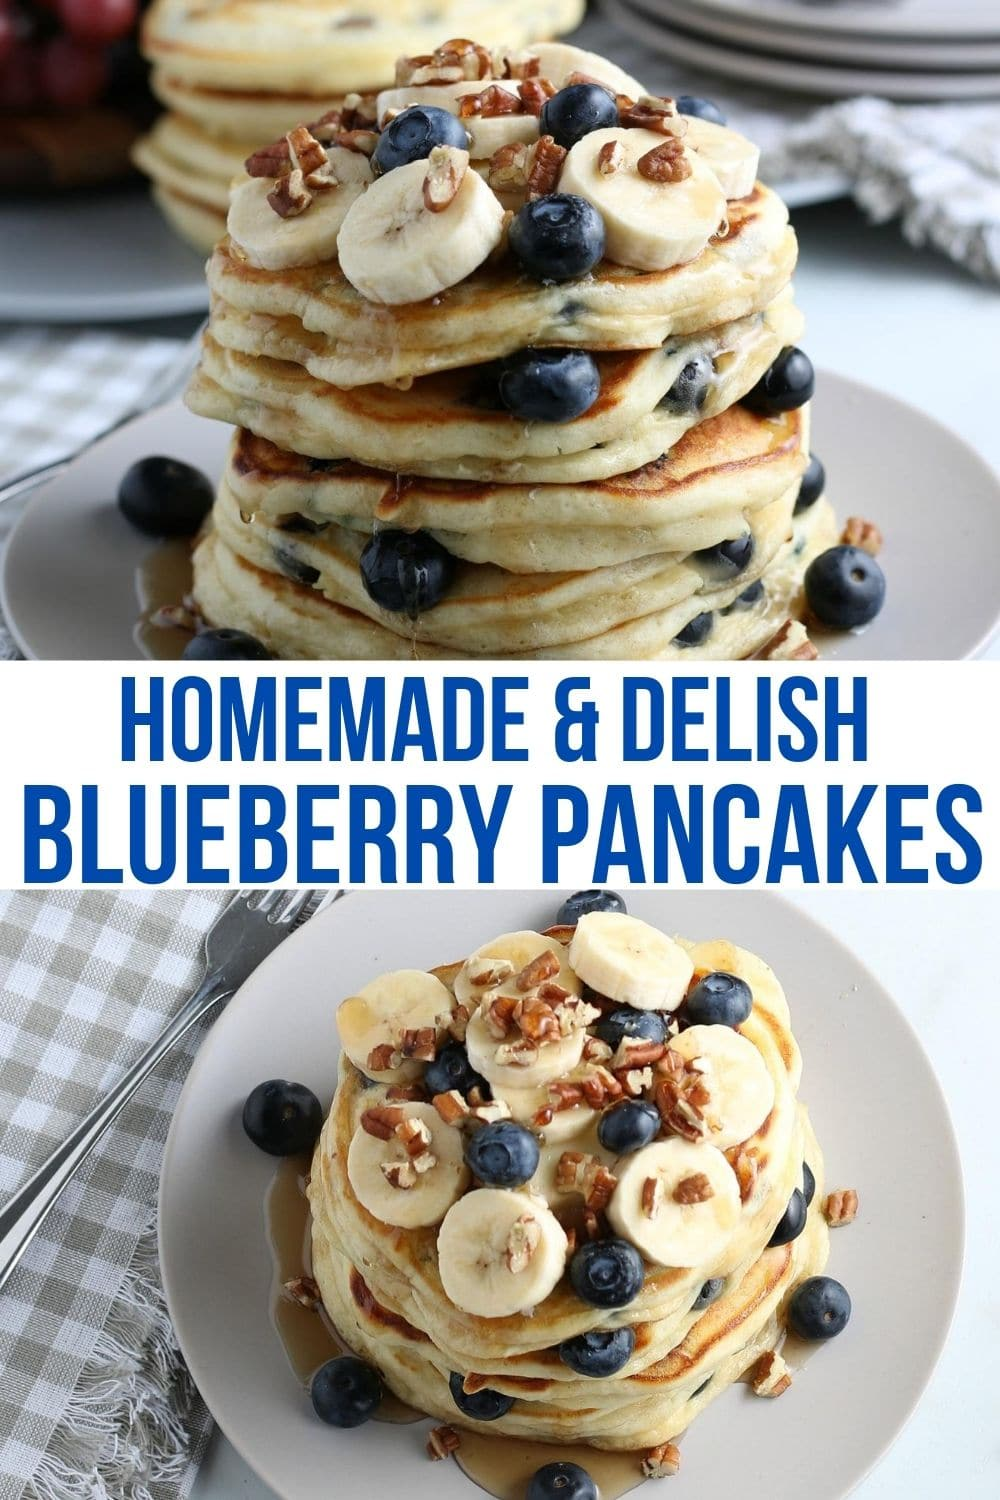 Collage of blueberry pancakes